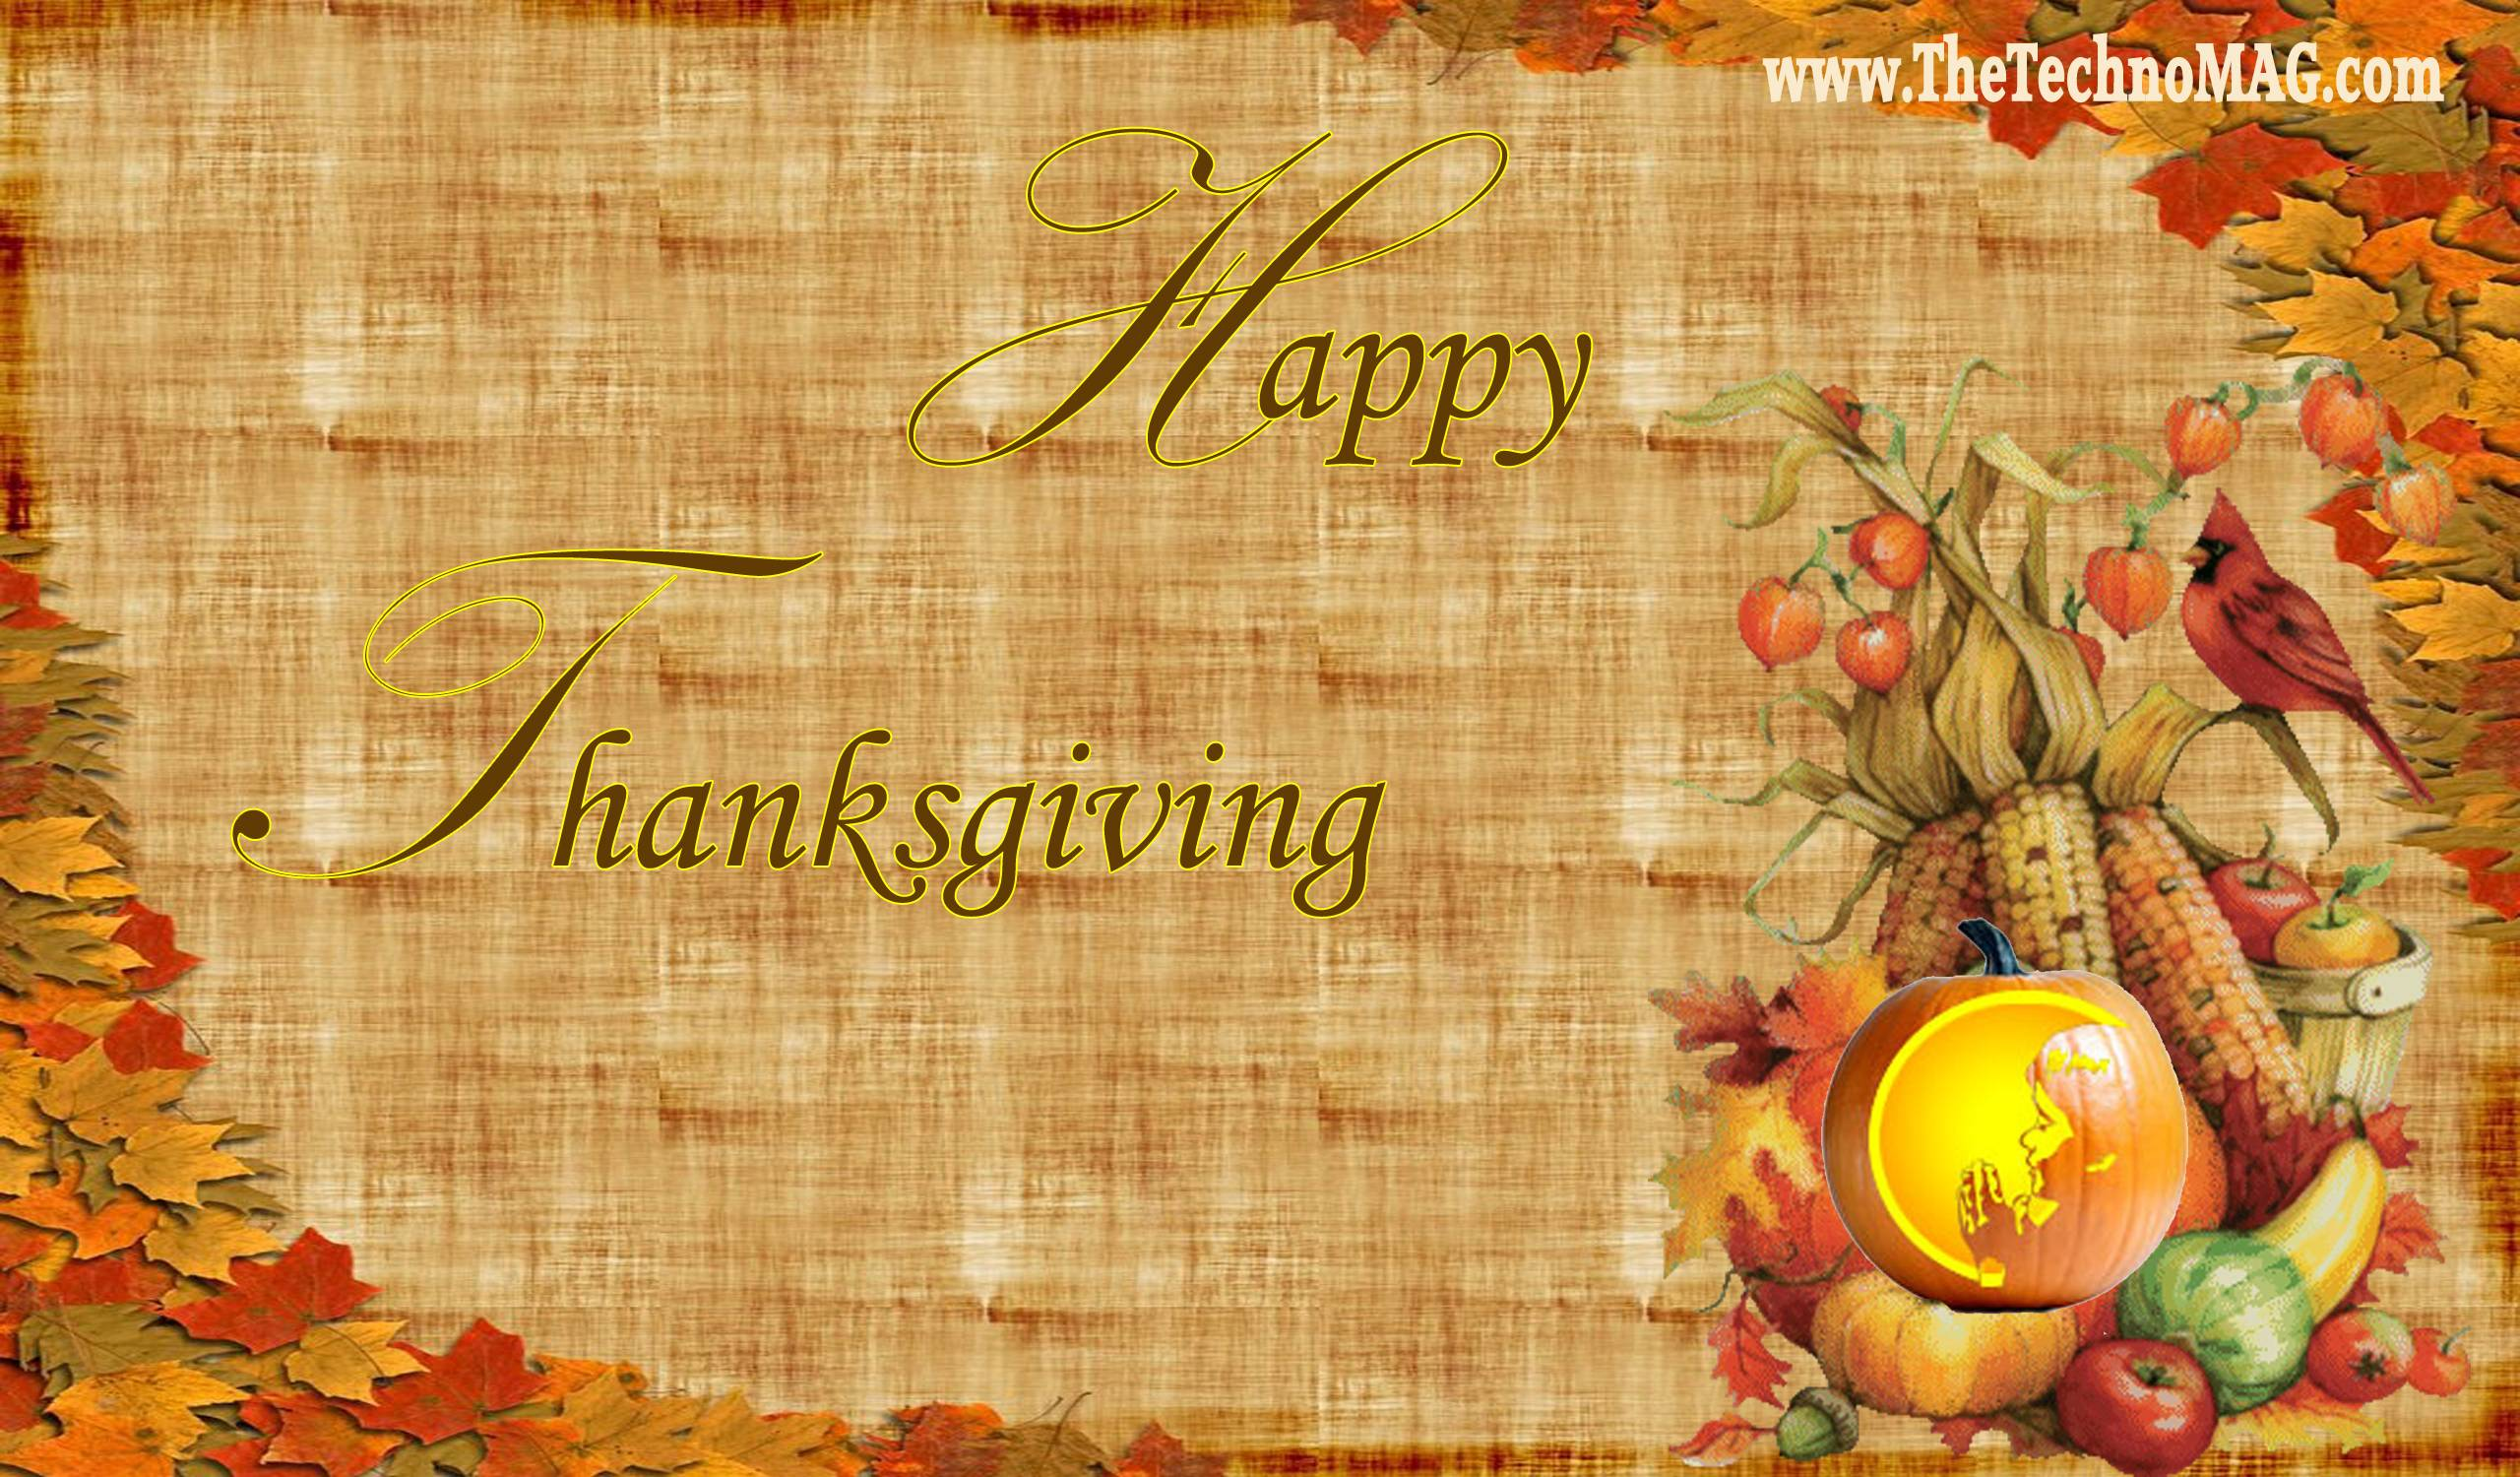 Happy Thanksgiving Wallpaper Free